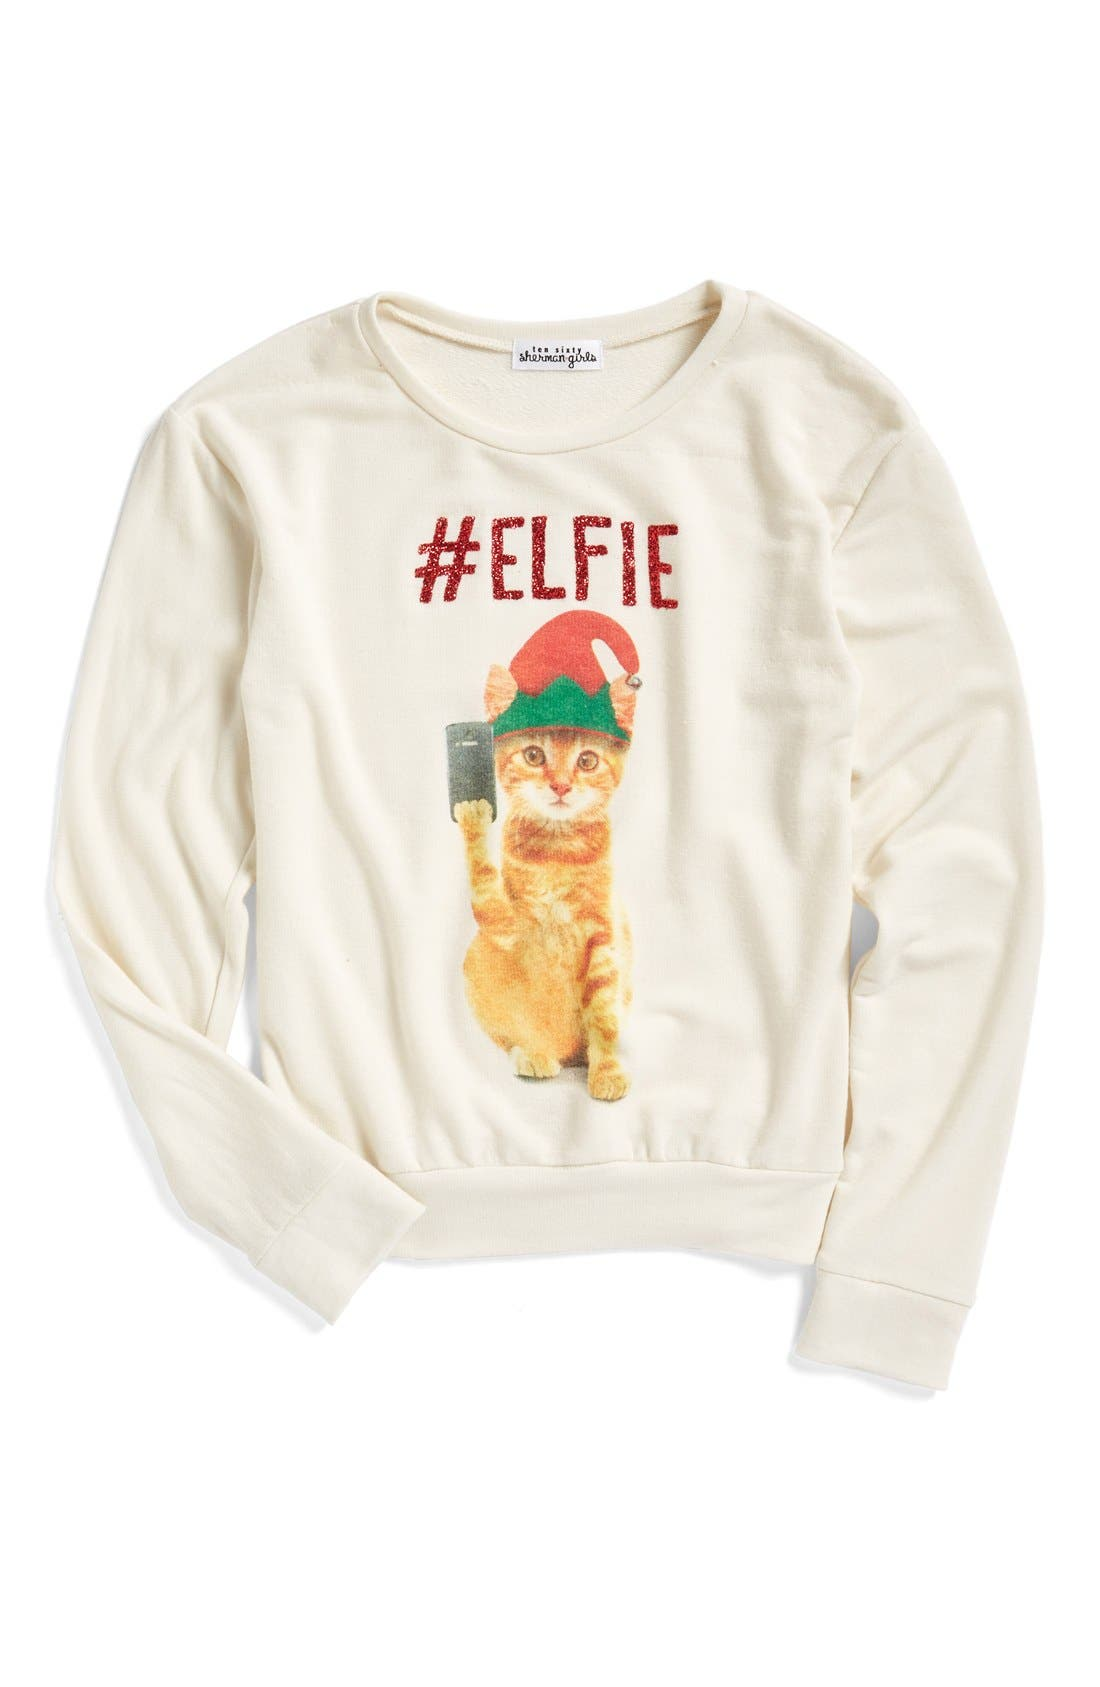 Alternate Image 1 Selected - Ten Sixty Sherman #Elfie Graphic Sweatshirt (Little Girls)